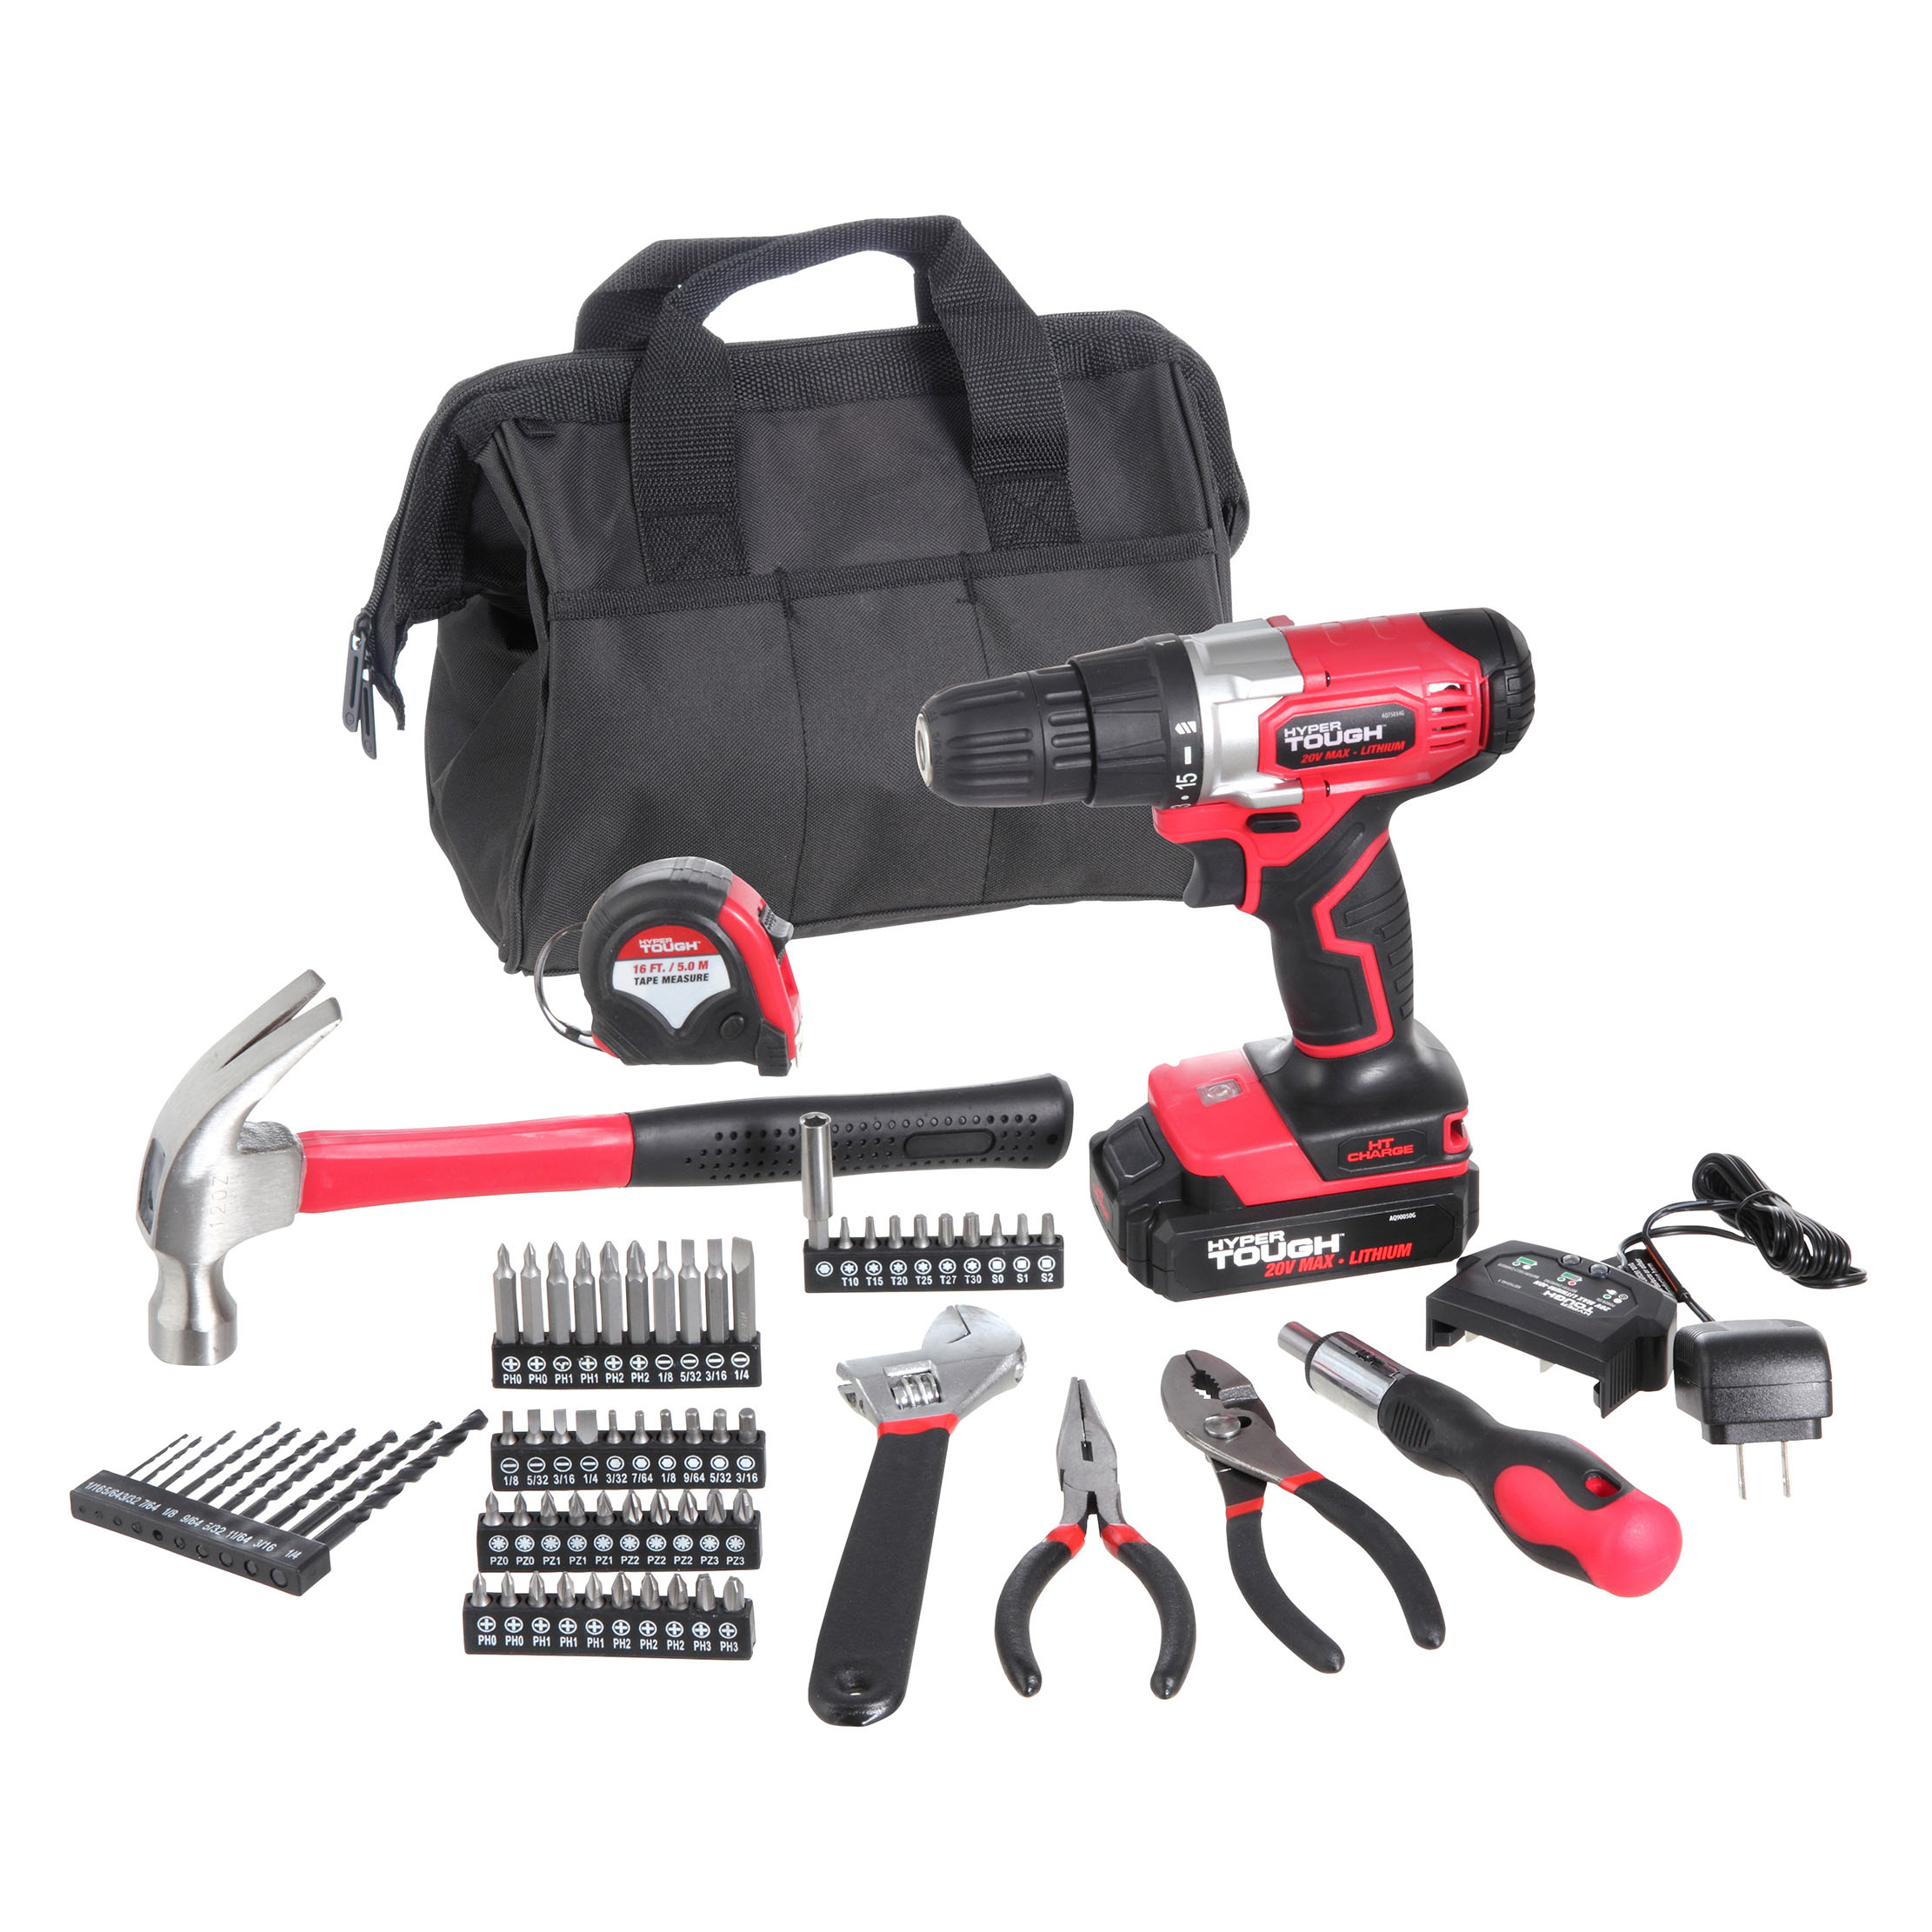 Hyper Tough 20V Max 3/8-in. Cordless Drill & 70-Piece DIY Home Tool Set Project Kit w/1.5Ah Lithium-Ion Battery & Charger, Bit Holder, LED Work Light & Storage Bag - Walmart.com